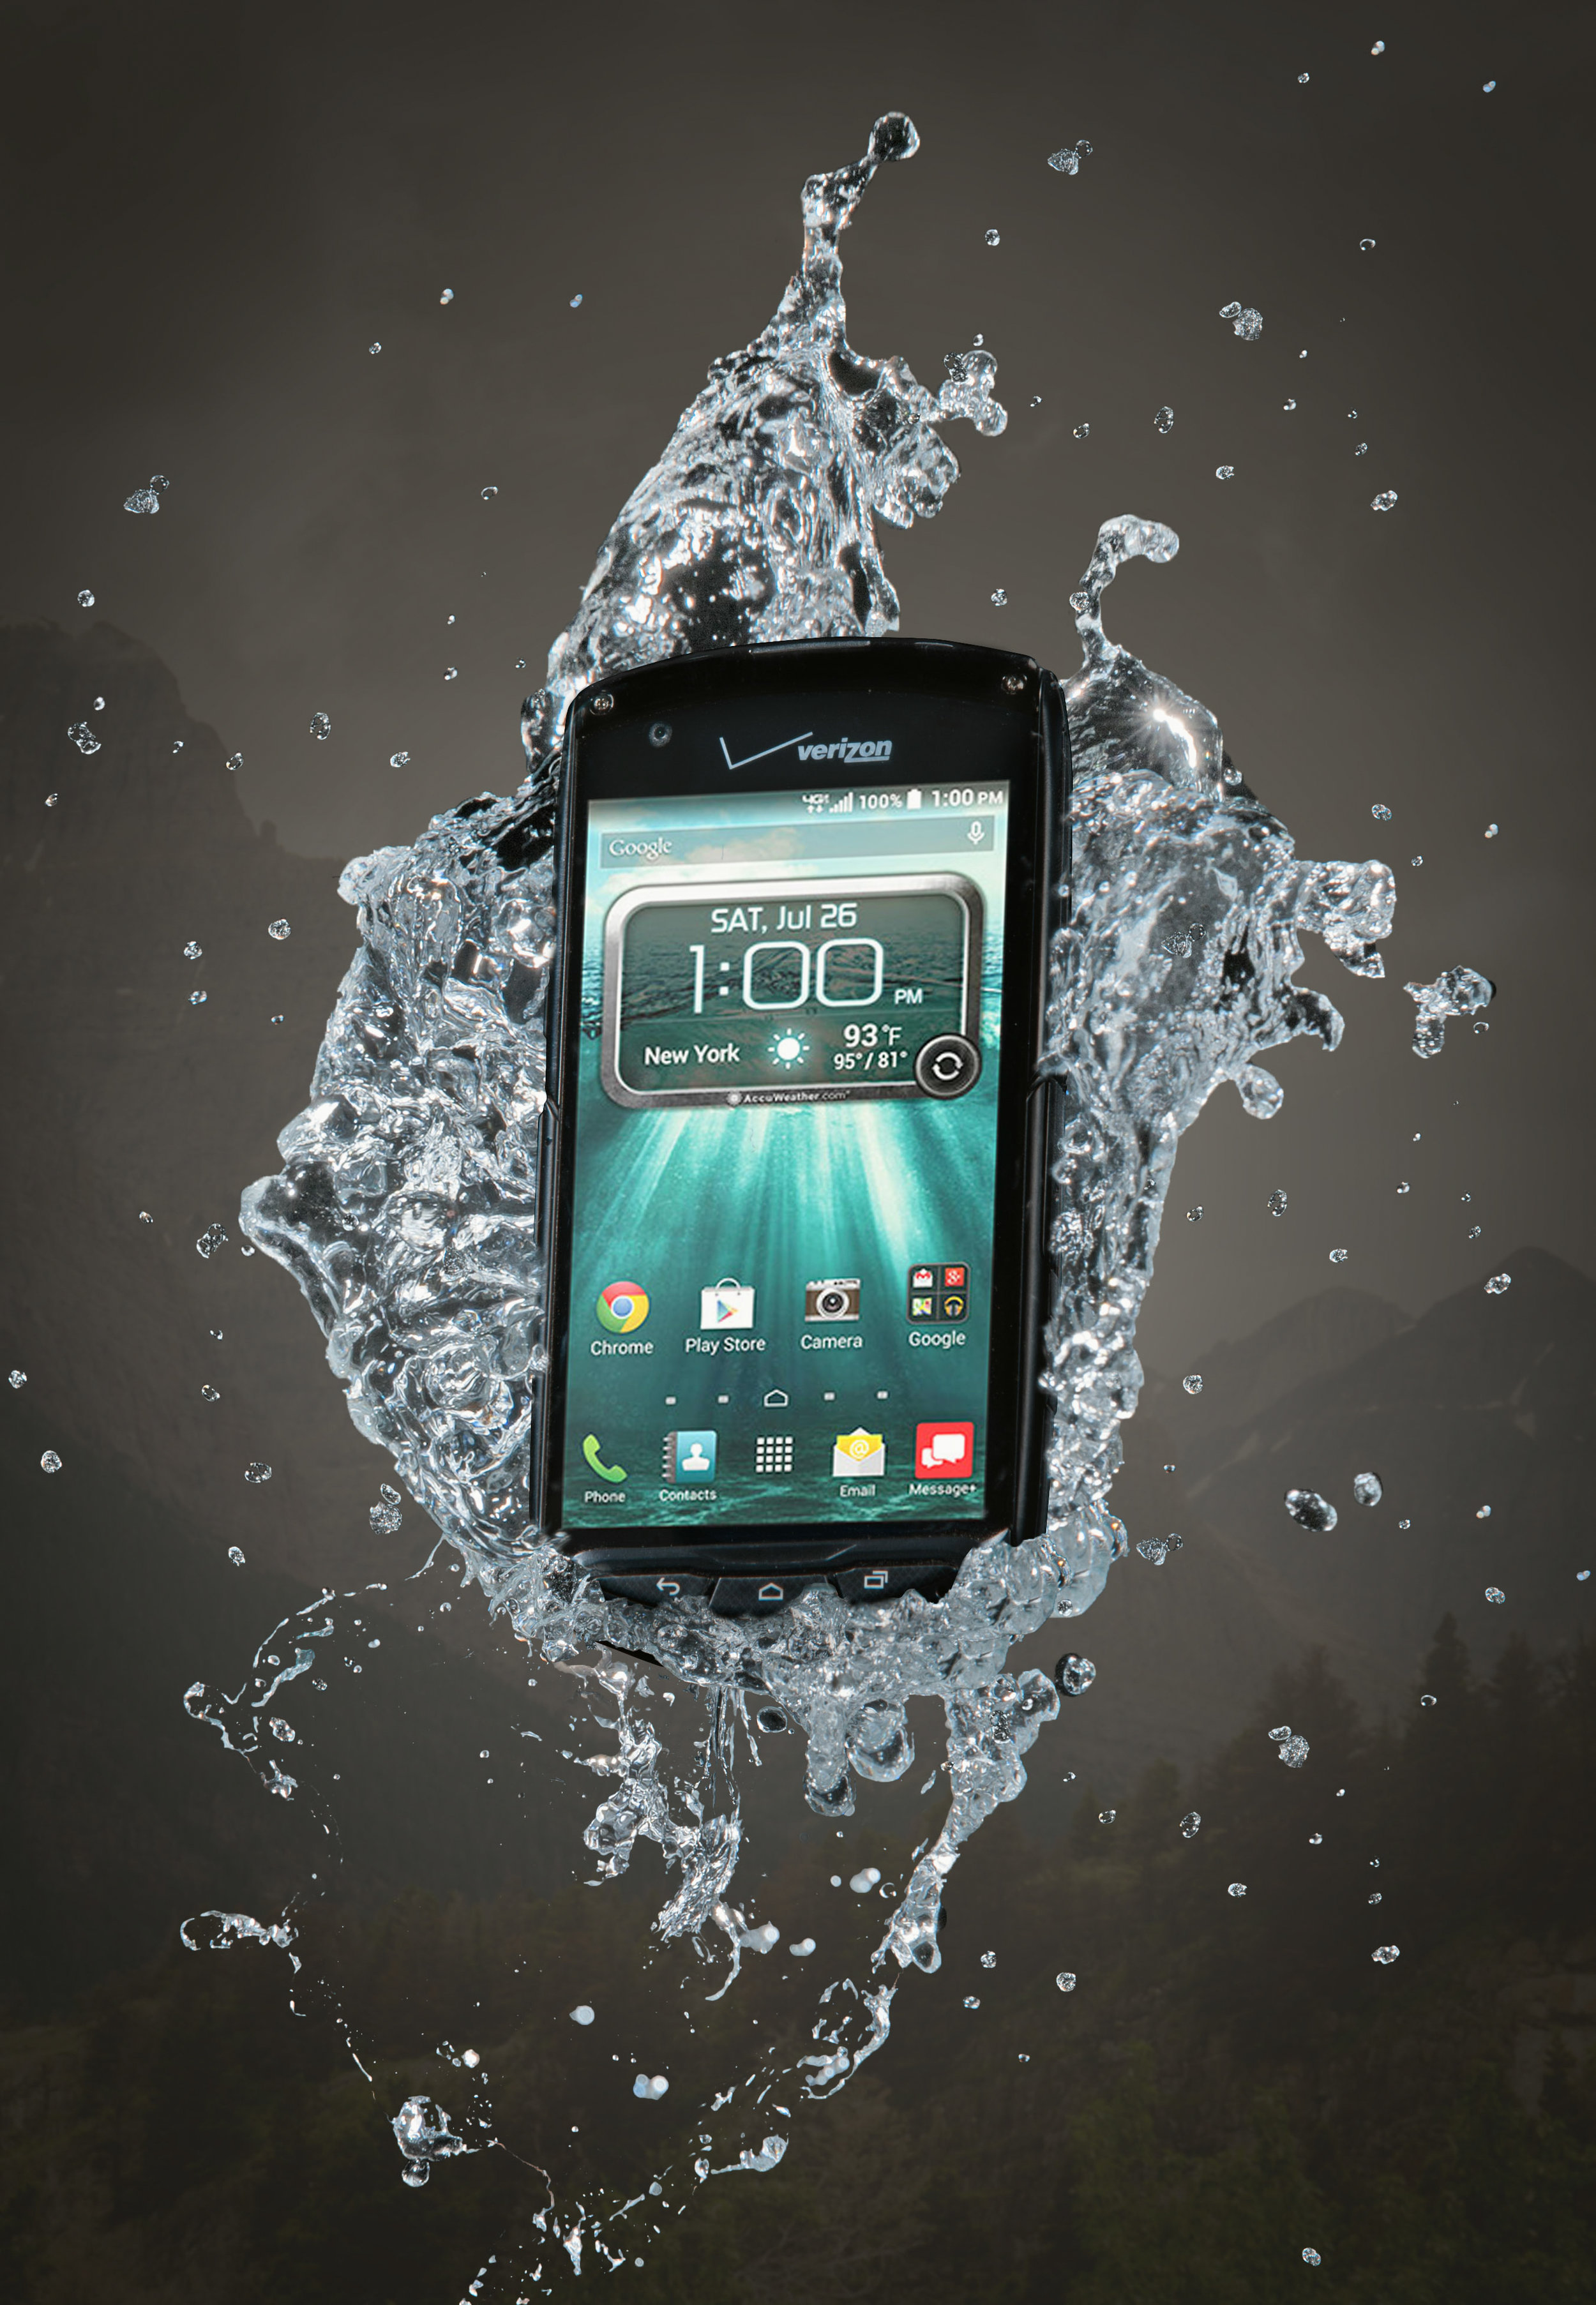 This is a composite image, it is not real- that is, this phone didn't really float in the mountain air surrounded by a bubble of water. However, it IS a super tough waterproof phone, and could have totally handled it.